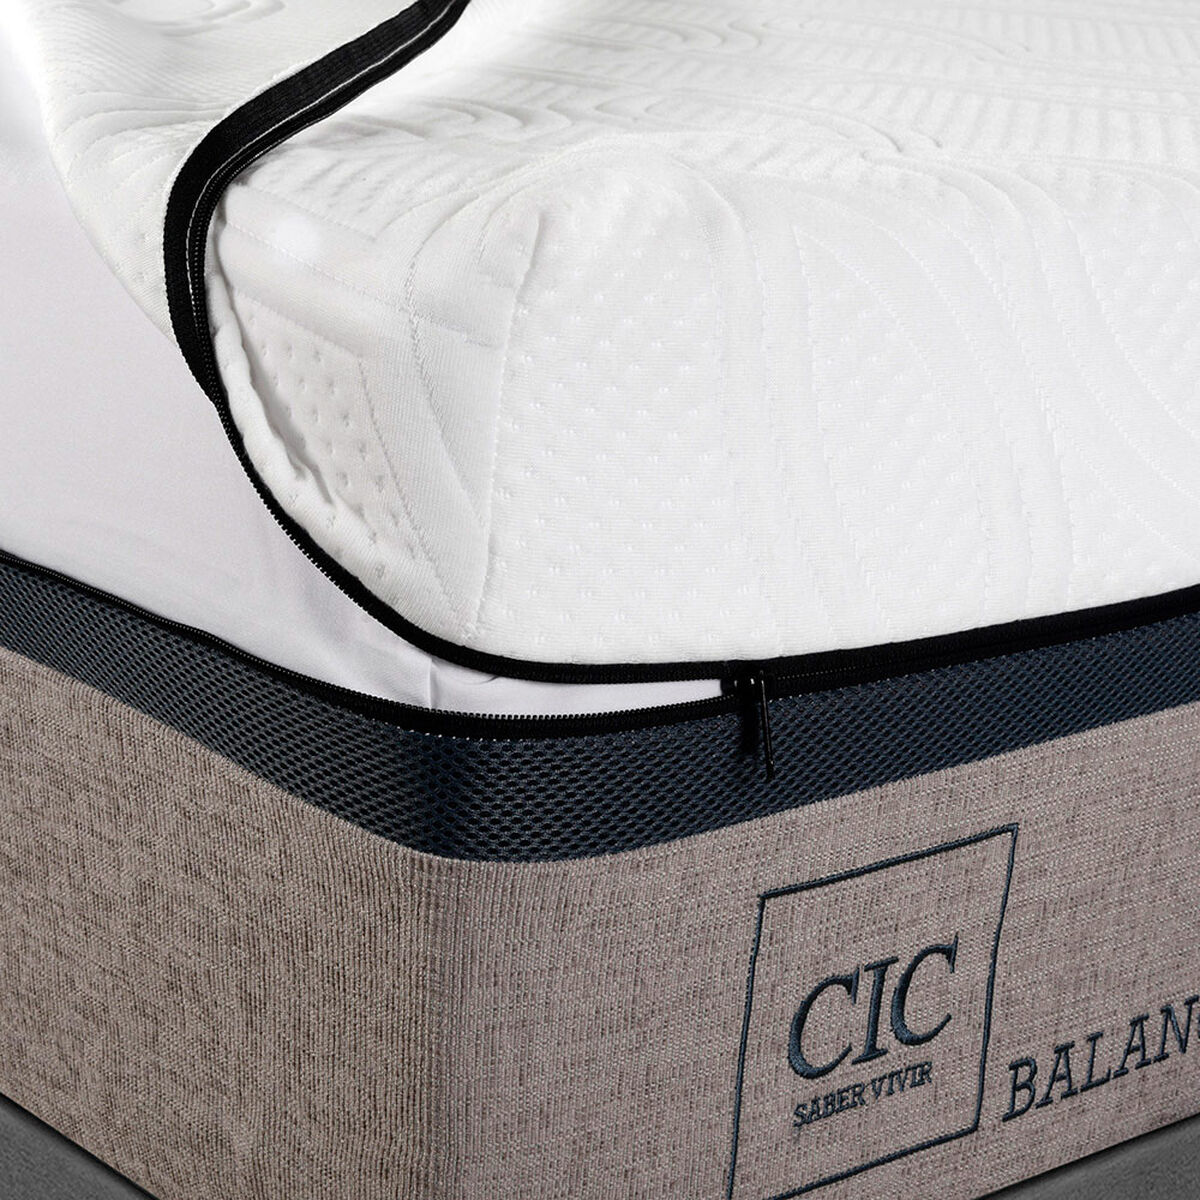 Box Spring CIC Balance King + Set Maderas New Atlanta